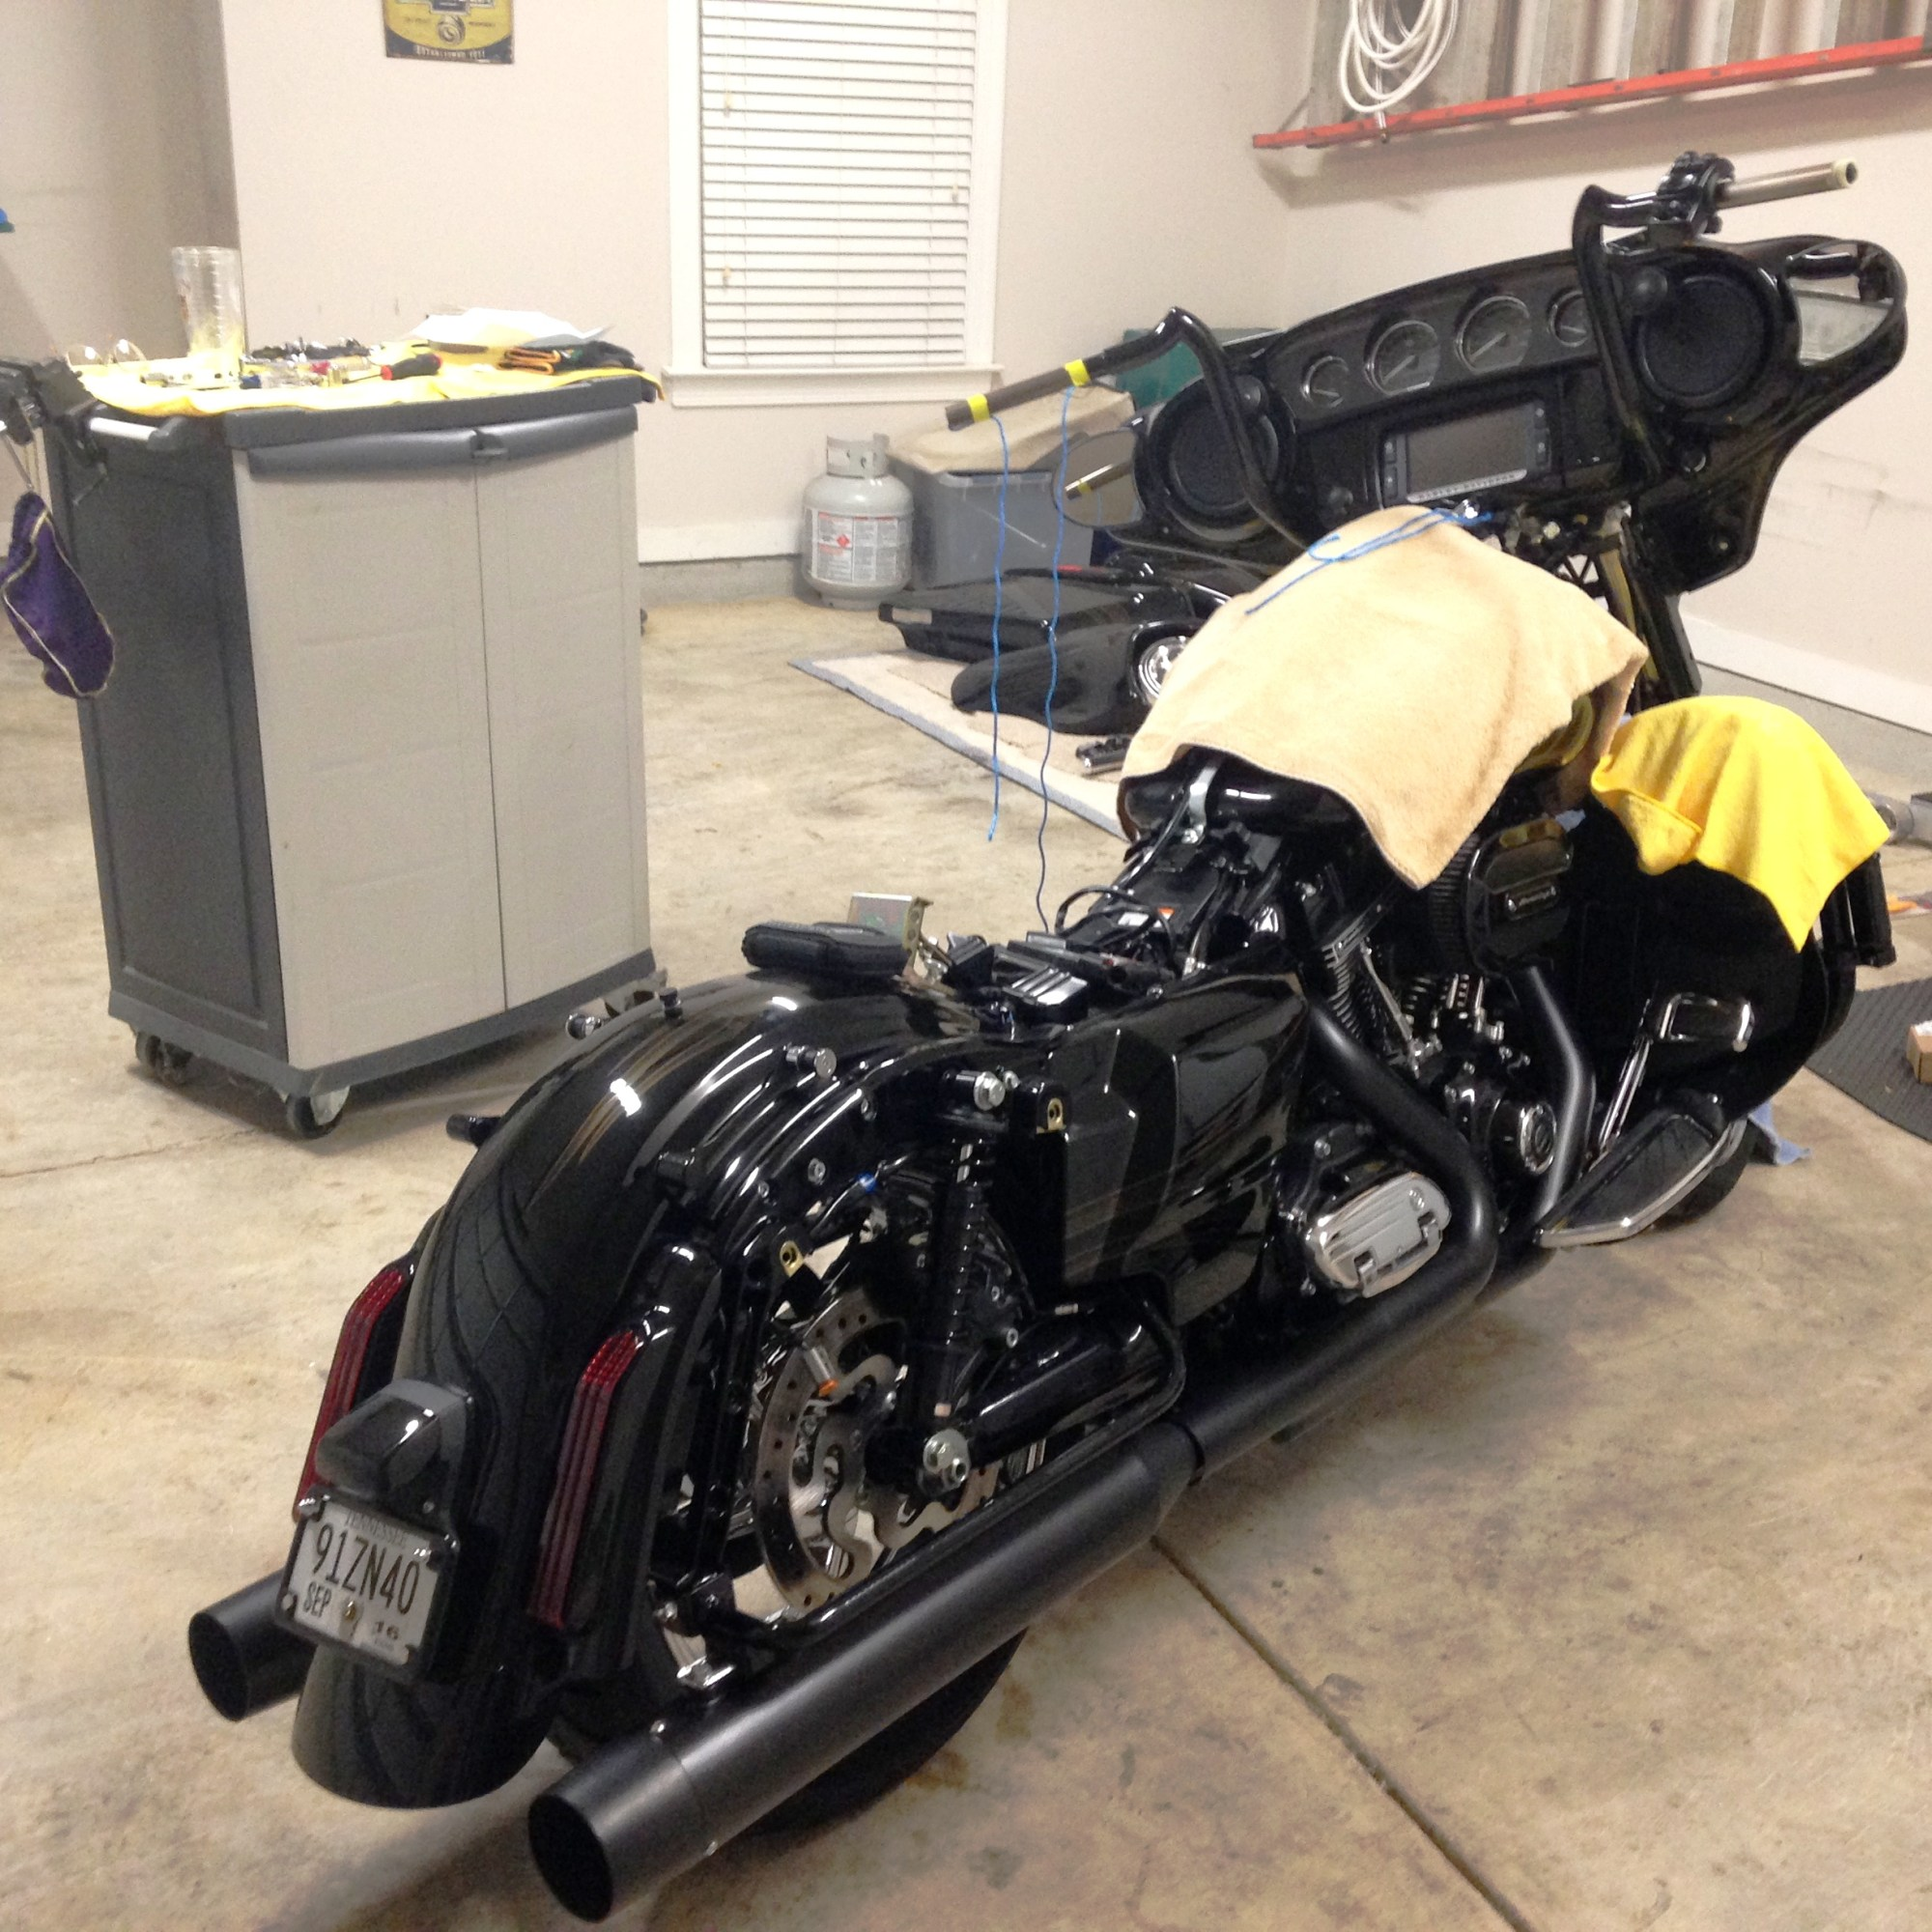 hight resolution of willy g harley heated grips wiring diagram wiring diagram for harley heated grips three wire wiring